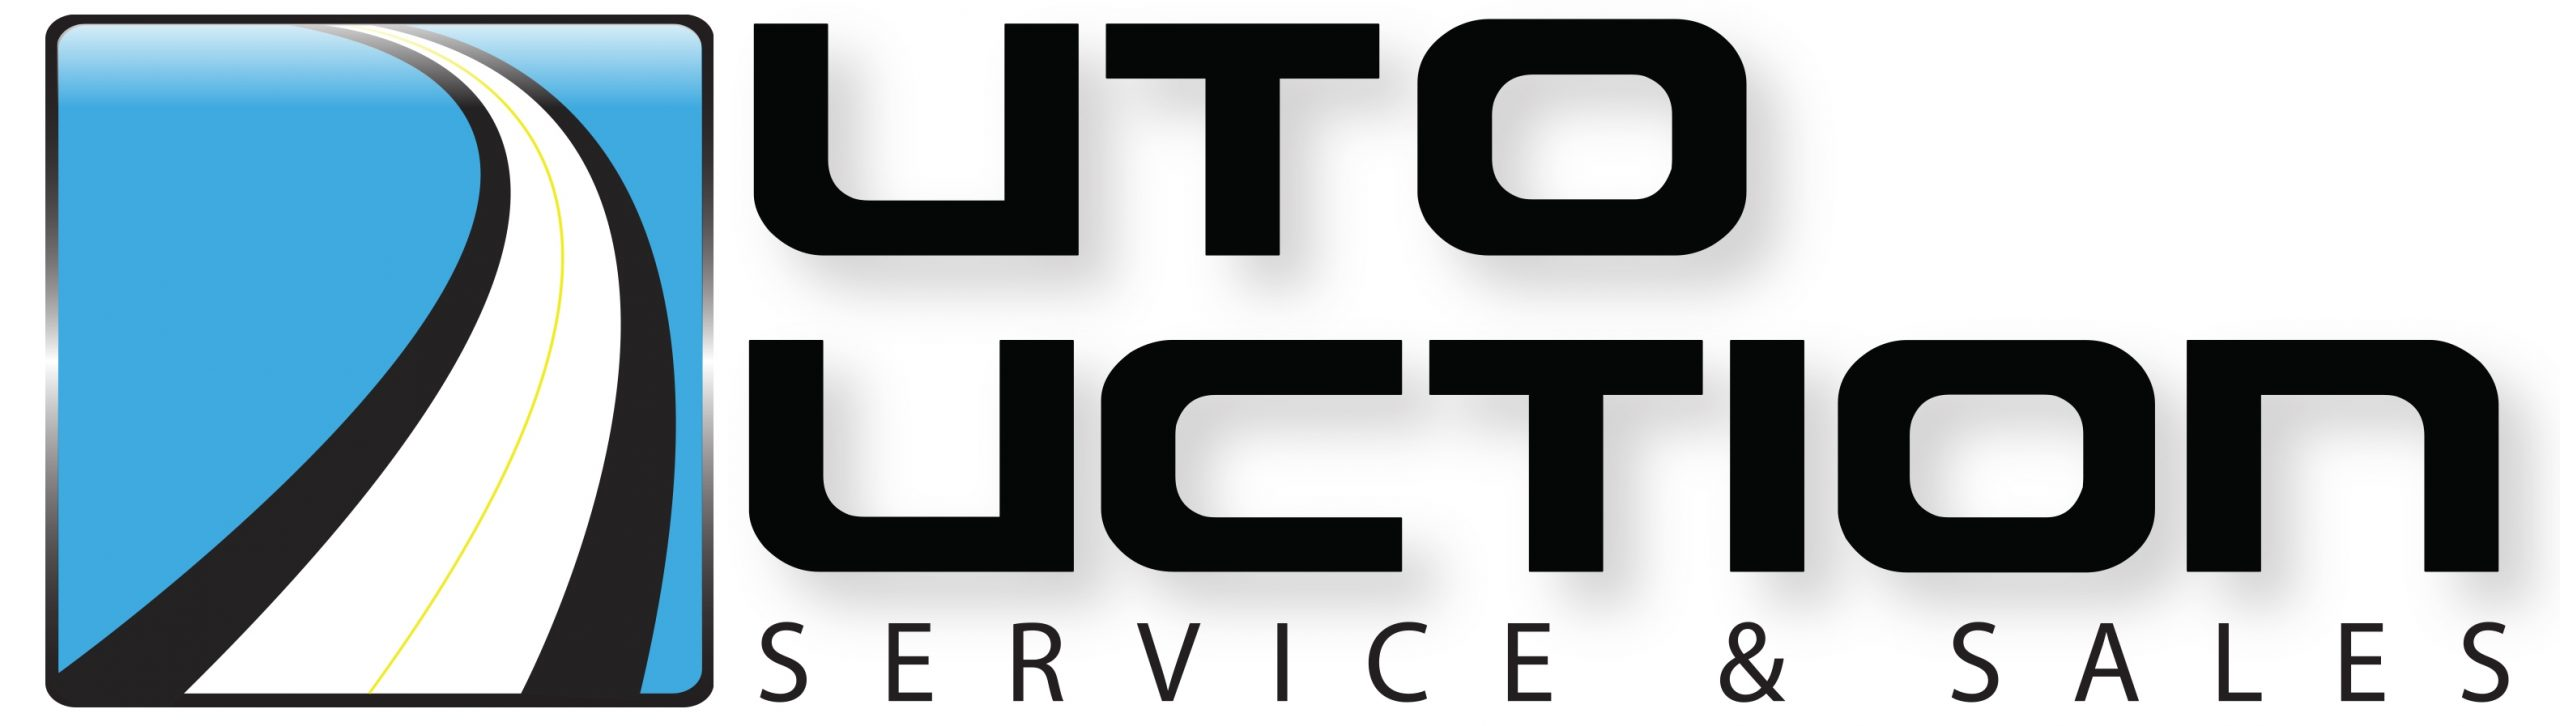 Auto Auction Service and Sales Corp